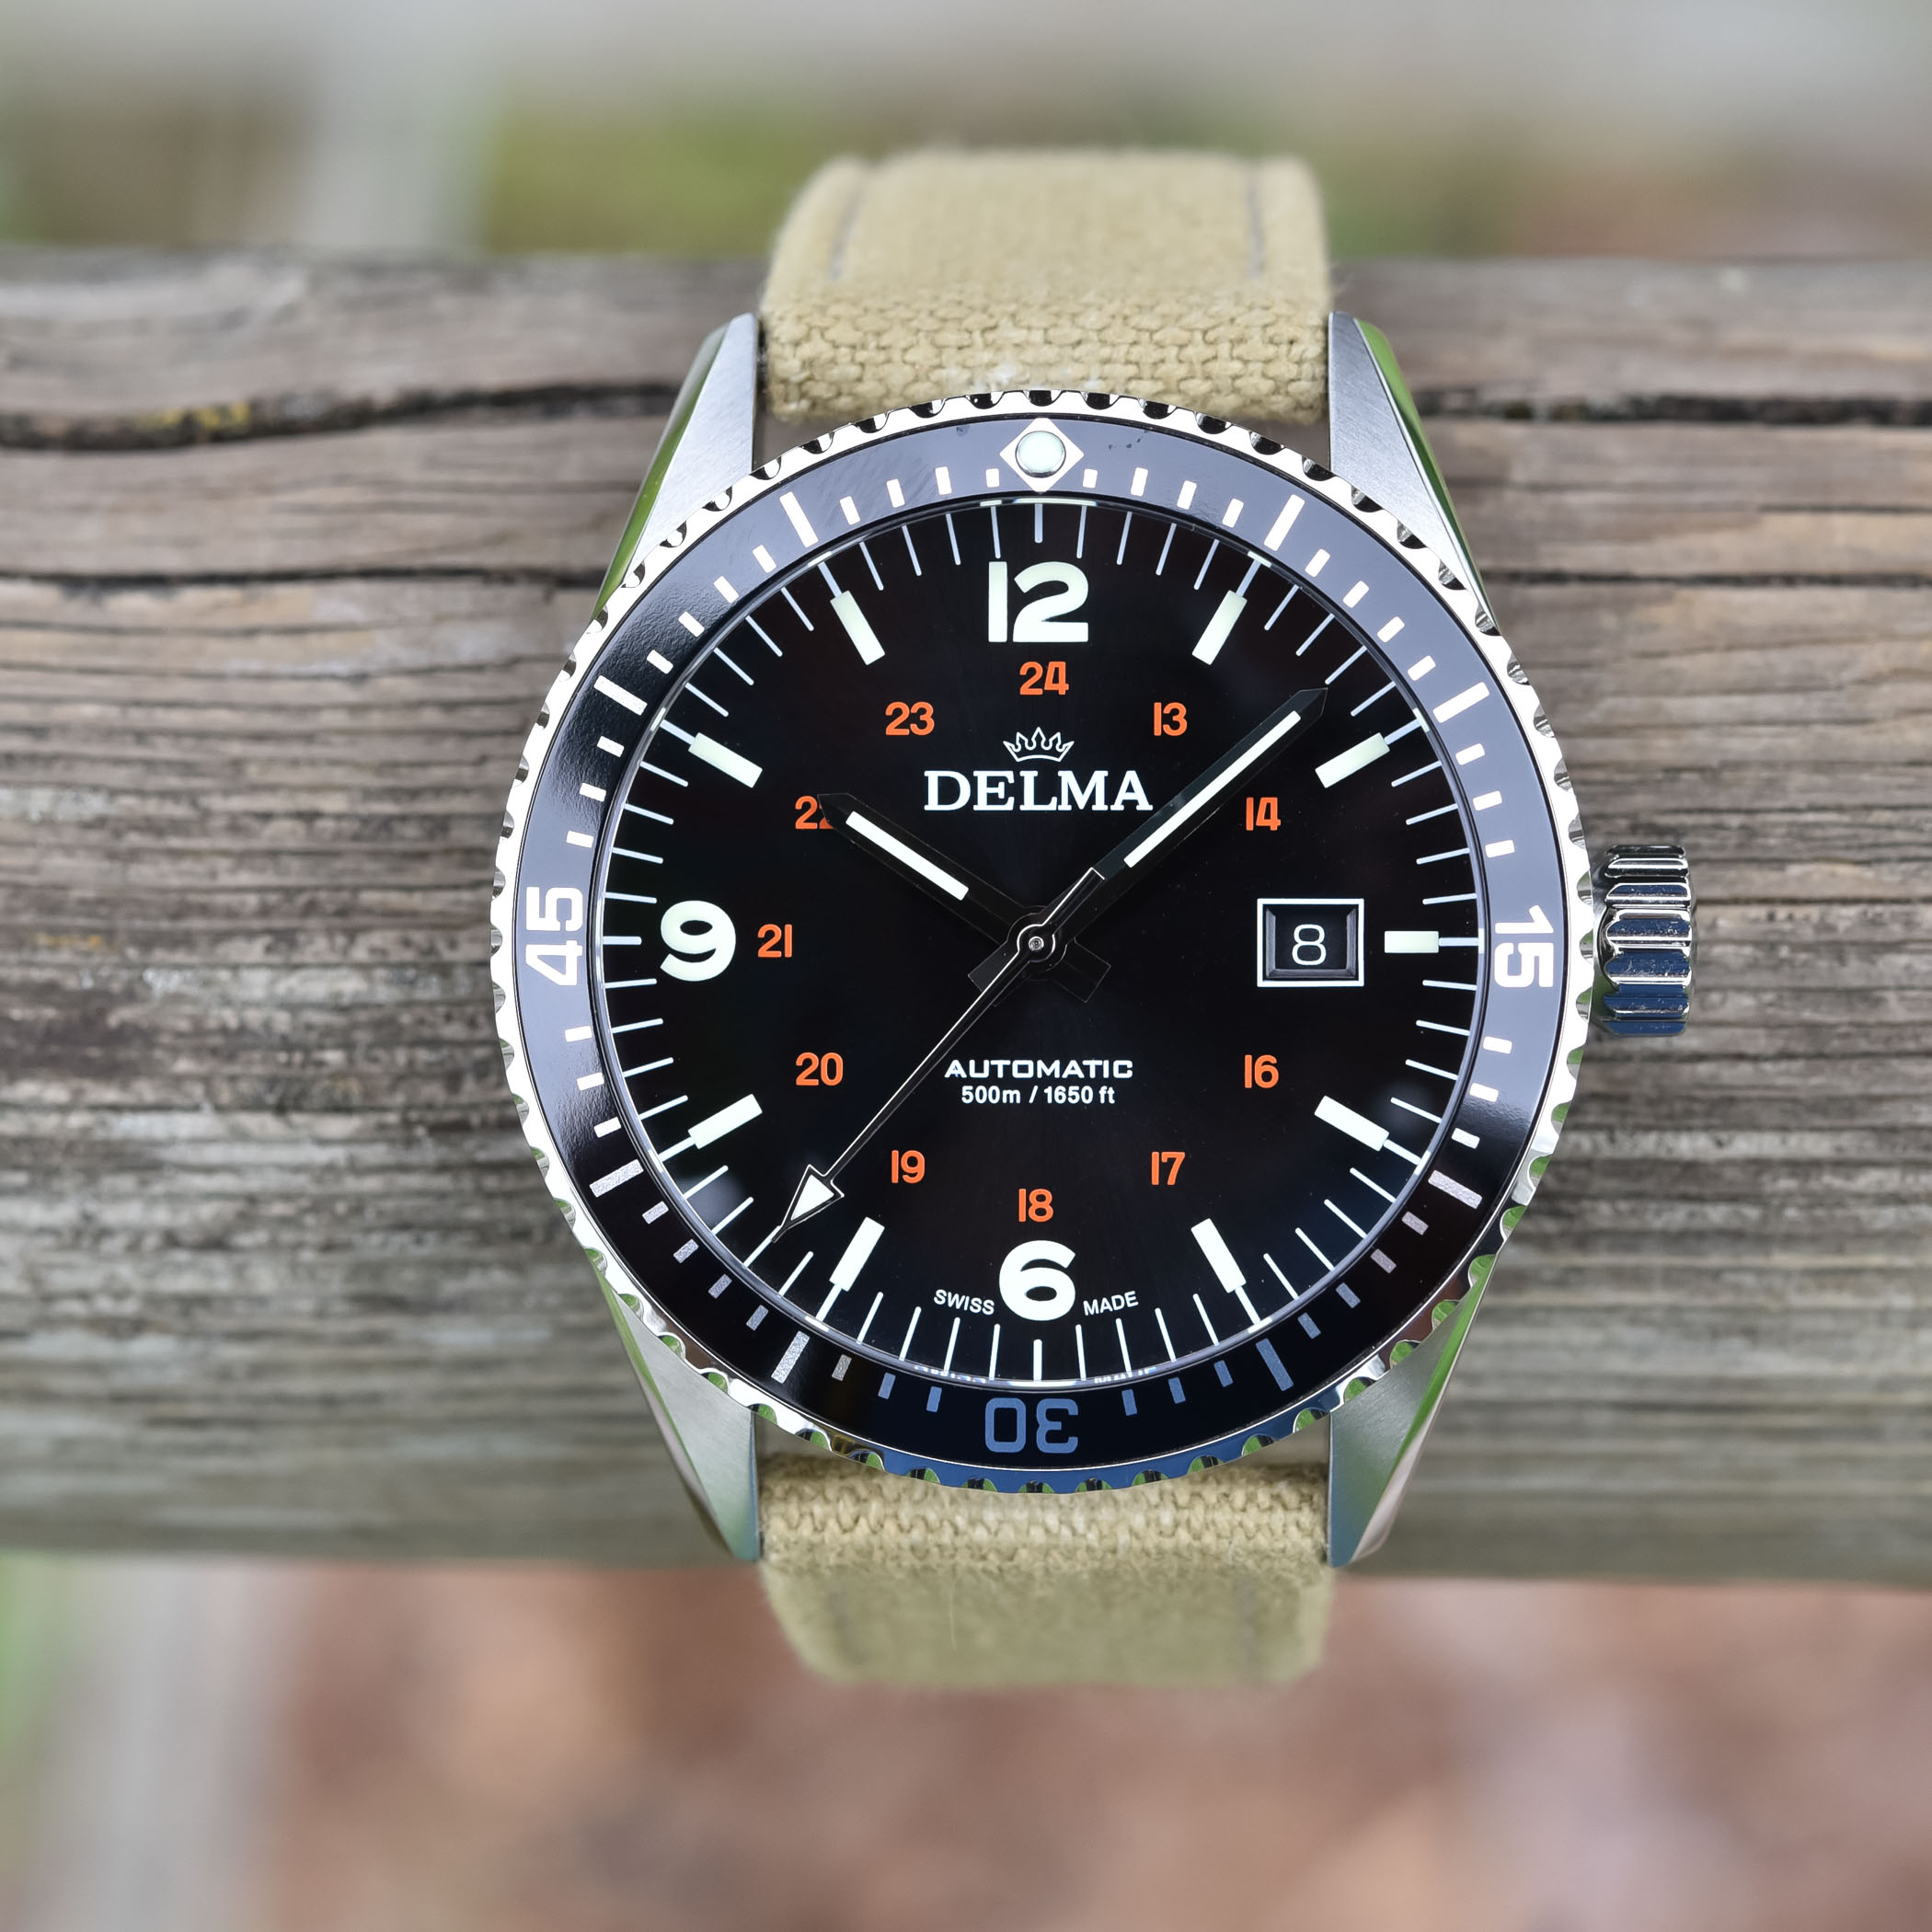 Delma Cayman Field Watch - Value Proposition review - 5